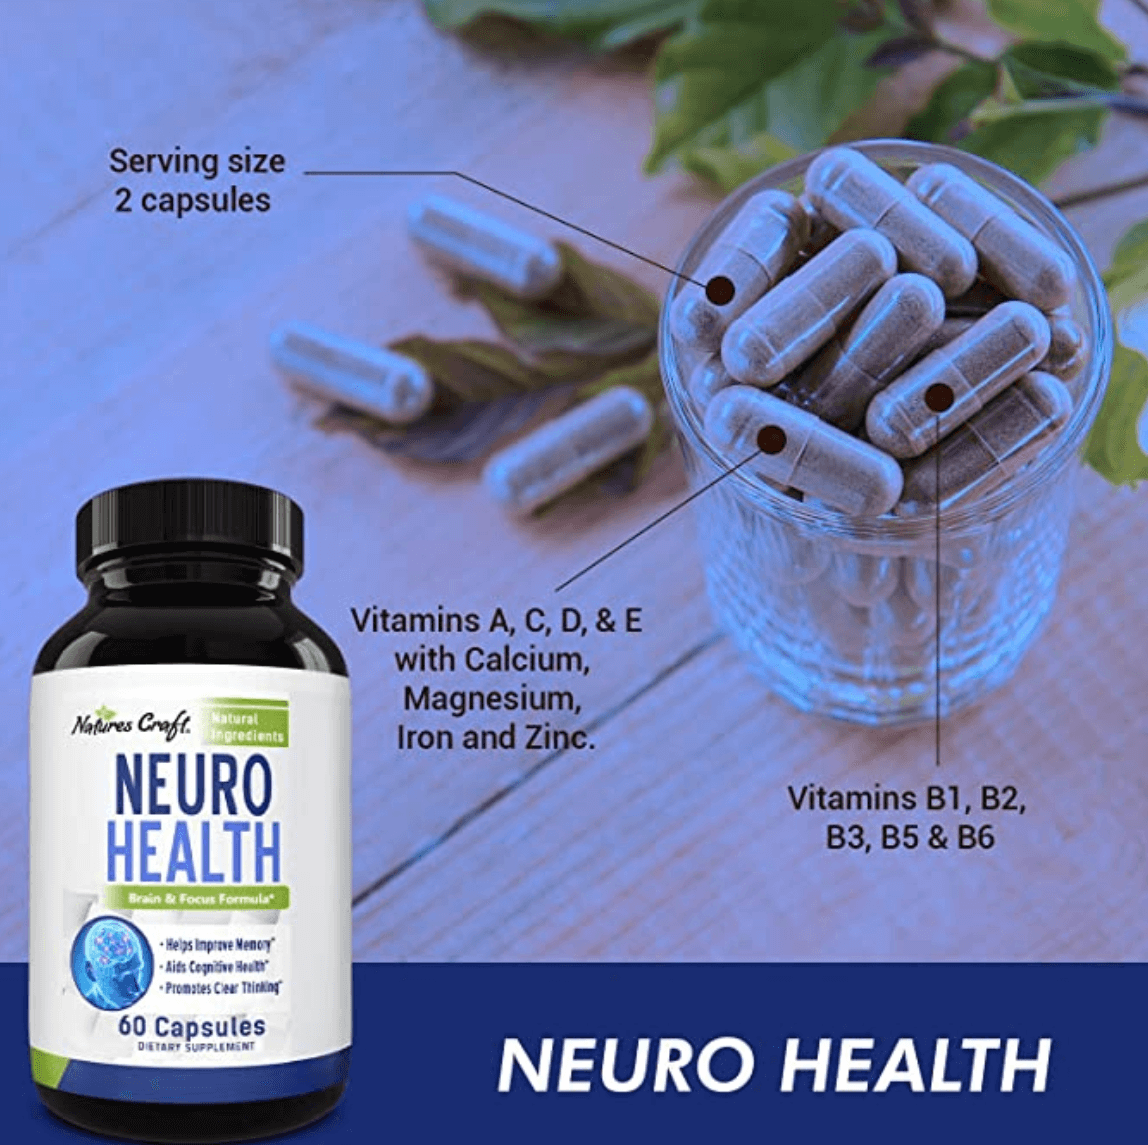 Neuro Health: Everything You Must Know About This Supplement